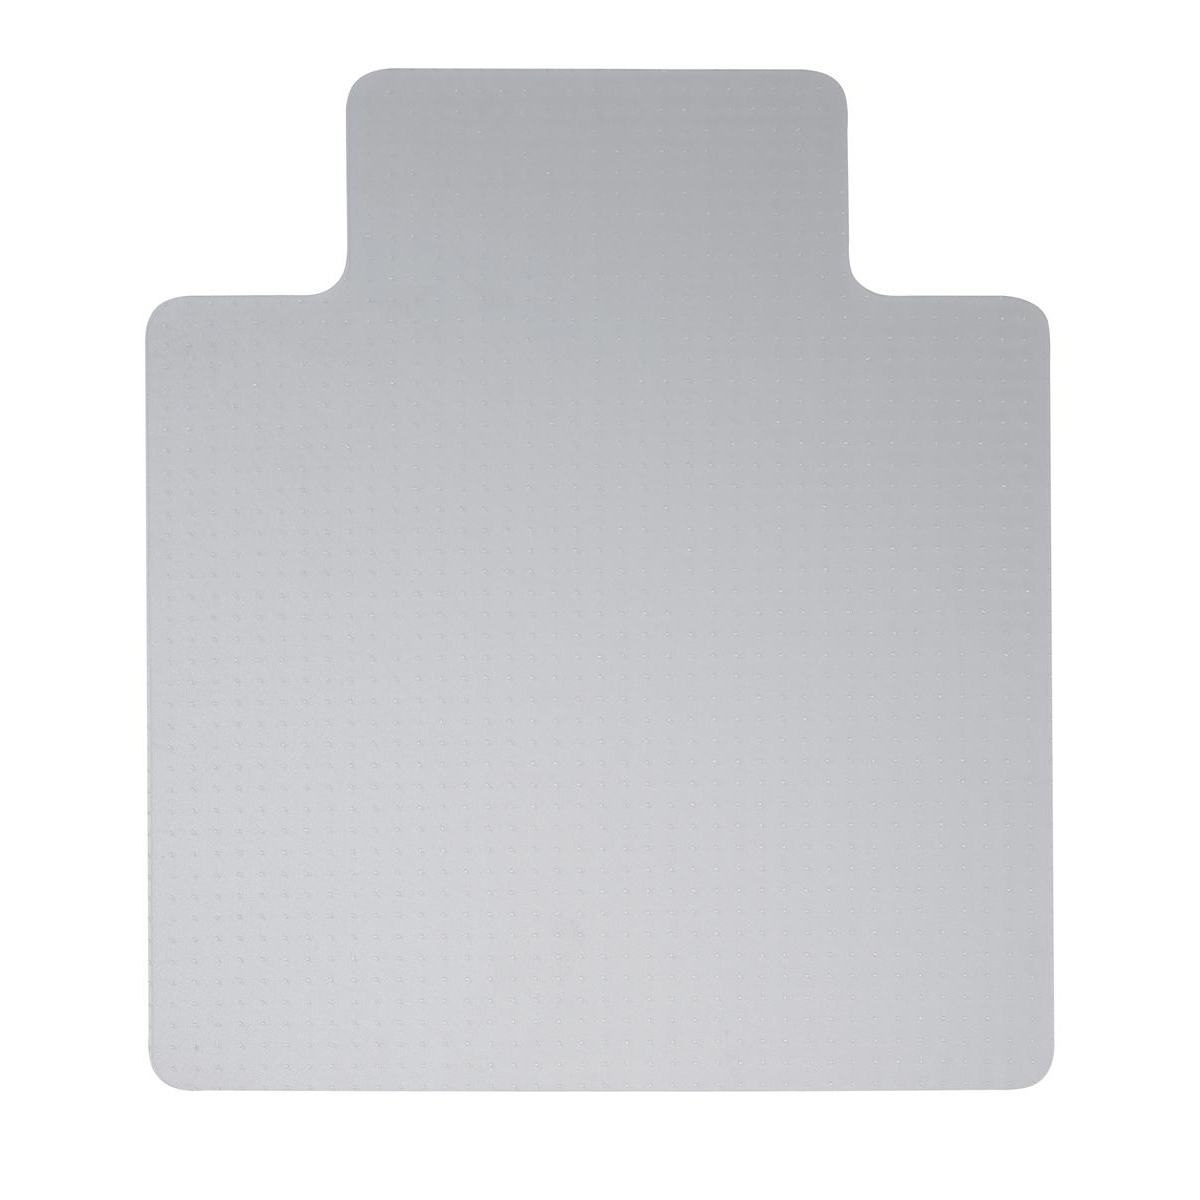 5 Star Office Chair Mat For Hard Floors Polycarbonate Lipped 1200x1340mm Clear